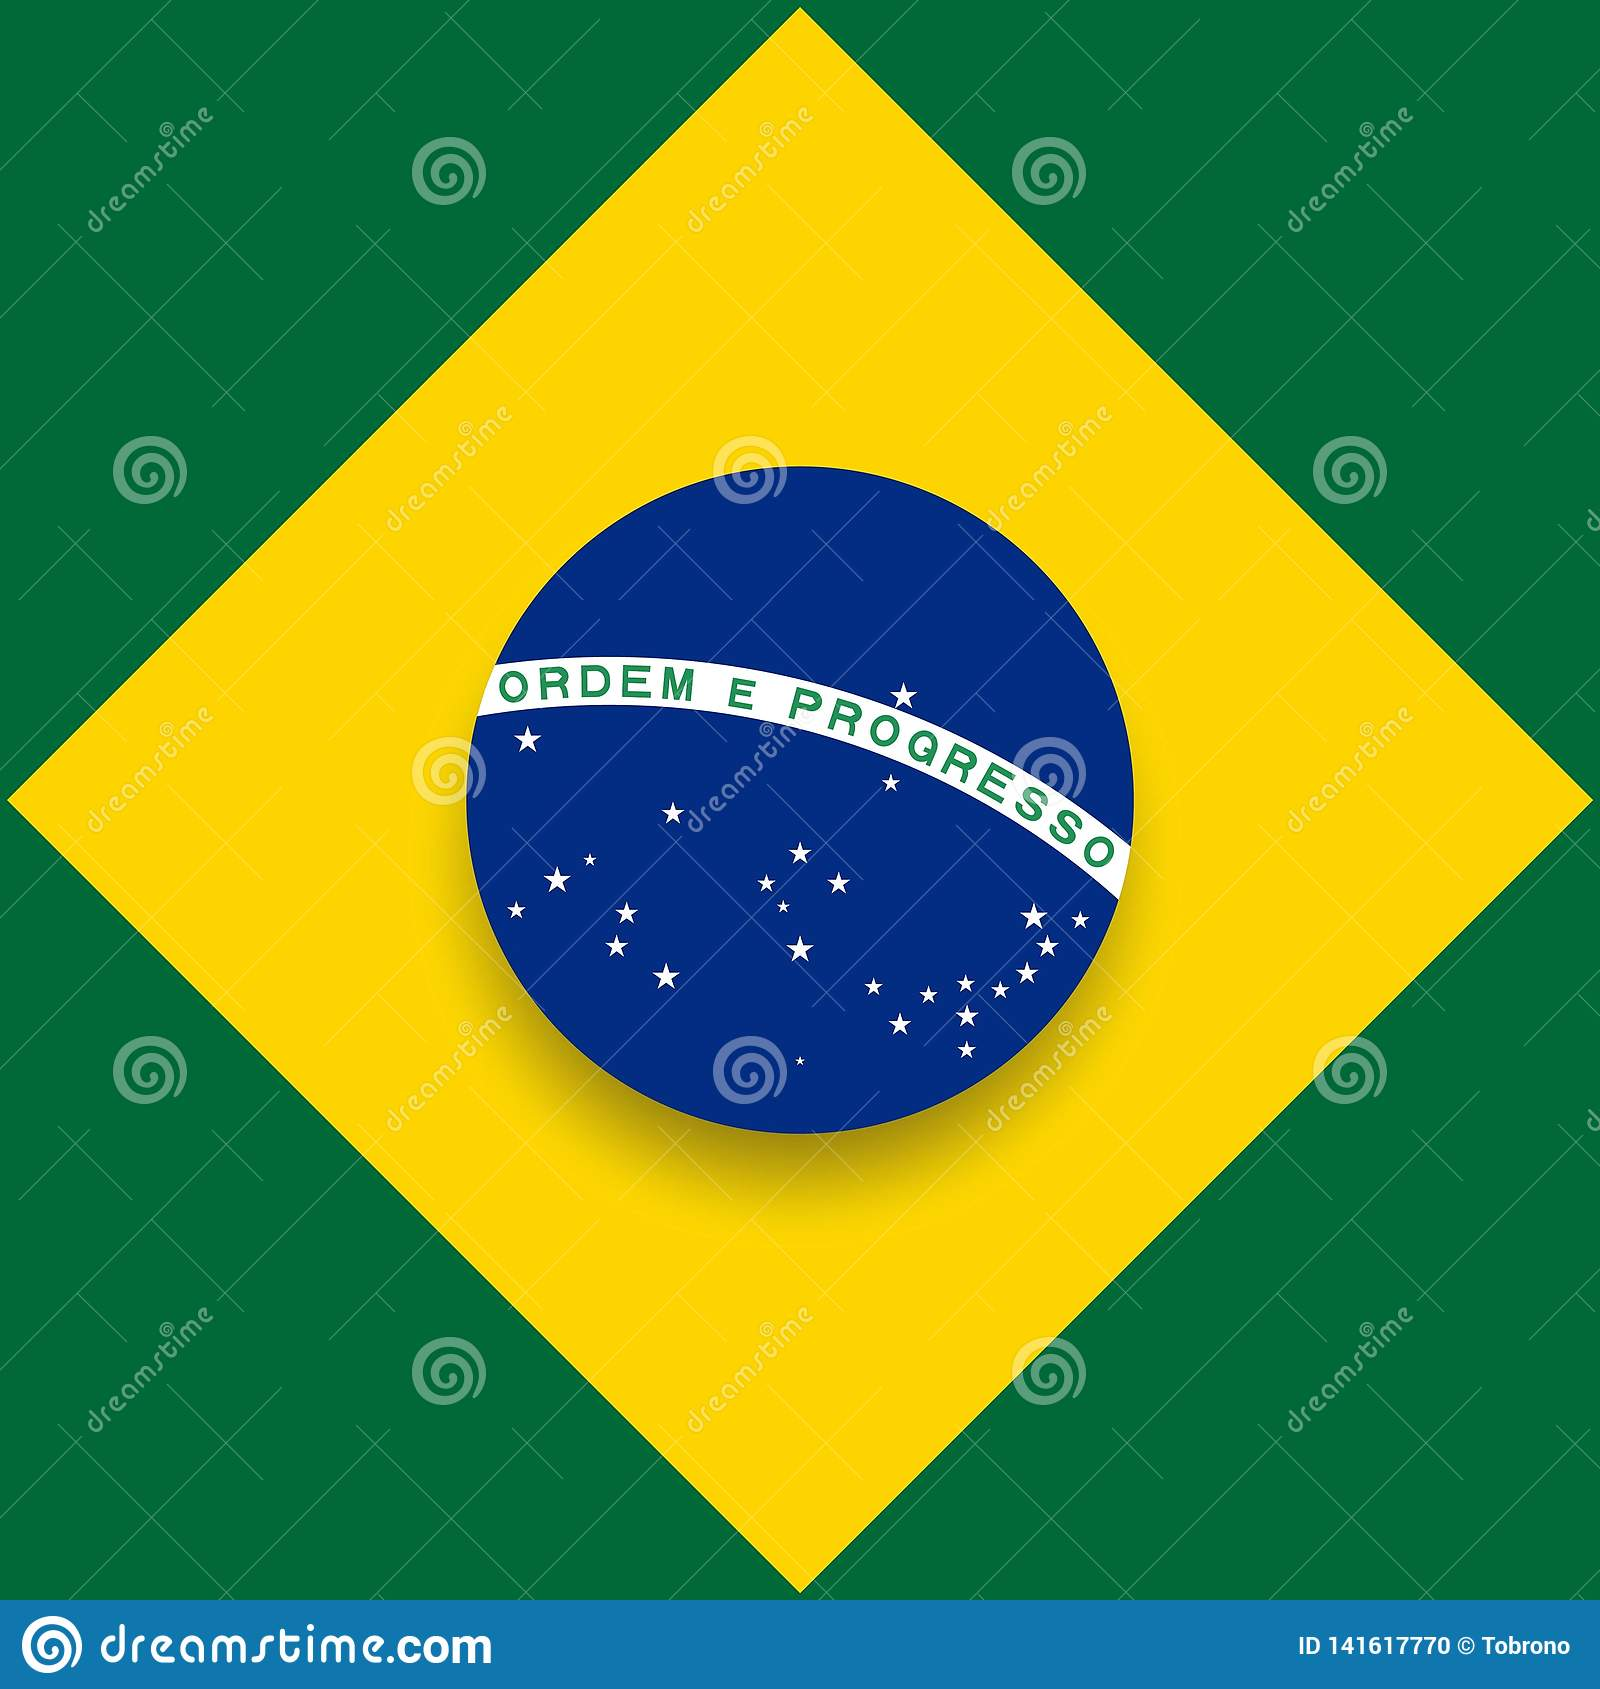 14b8a50ef87 Happy Brazil Independence Day Vector Template Design Illustration brasil  flag background green poster september 7 symbol yellow holiday image card  ...